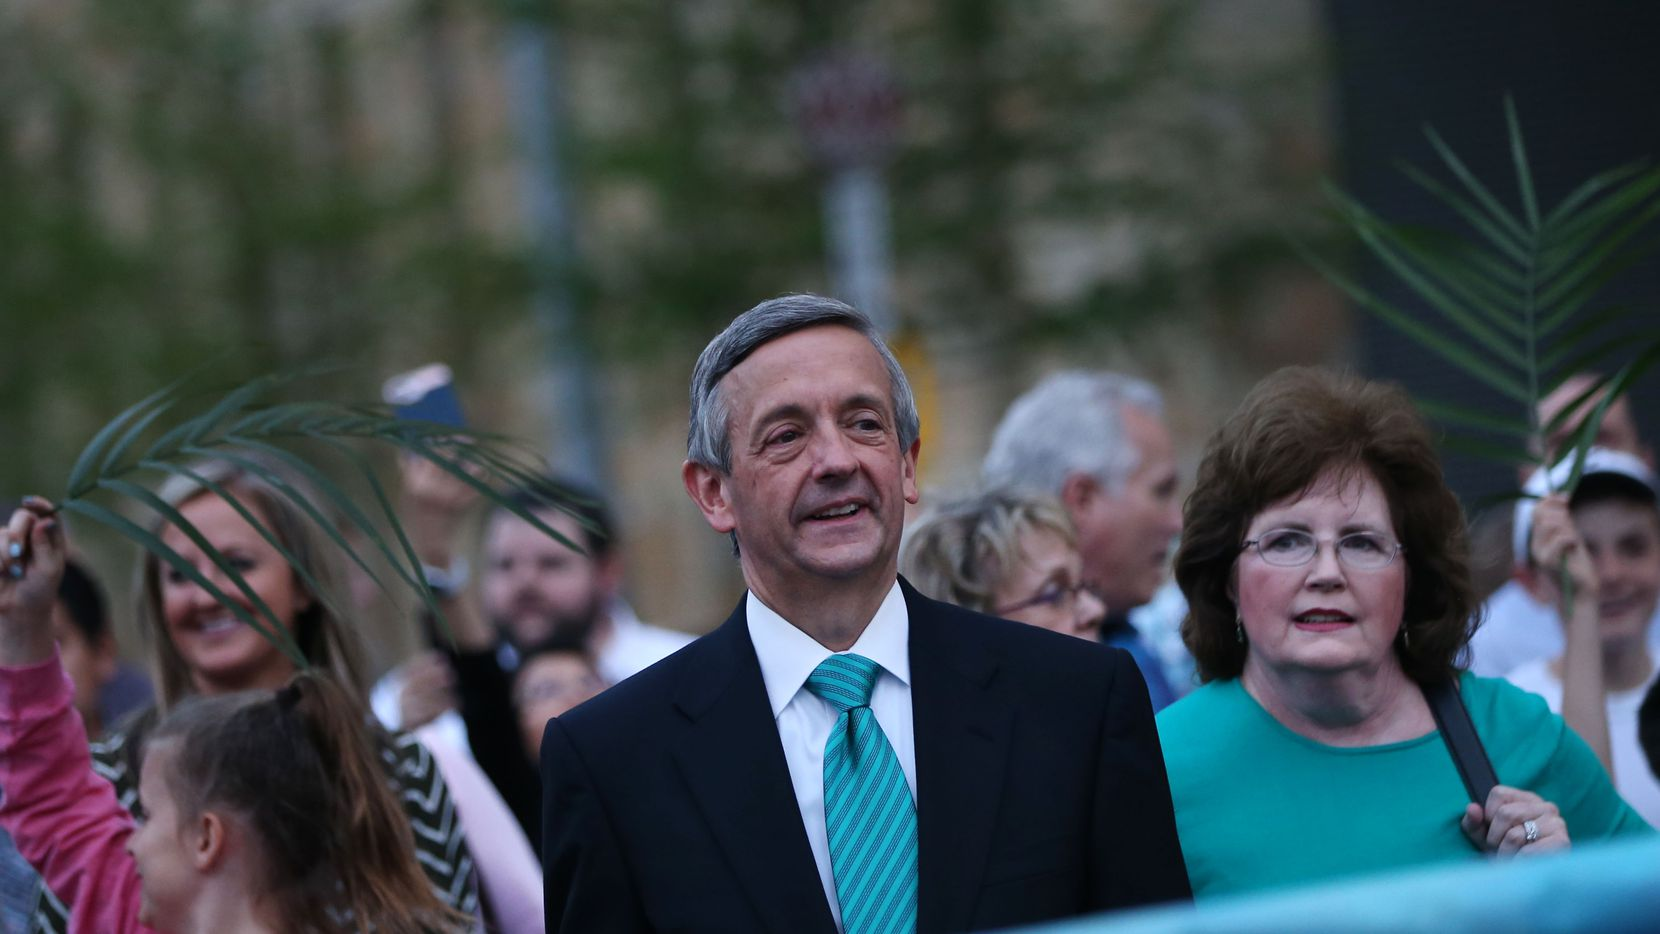 Pastor Robert Jeffress walks with his wife, Amy Jeffress, during the March for Eternal Life led by members of First Baptist Dallas in downtown Dallas on Palm Sunday, March 25, 2018. The march comes a day after the March for Our Lives protests for stricter gun control.